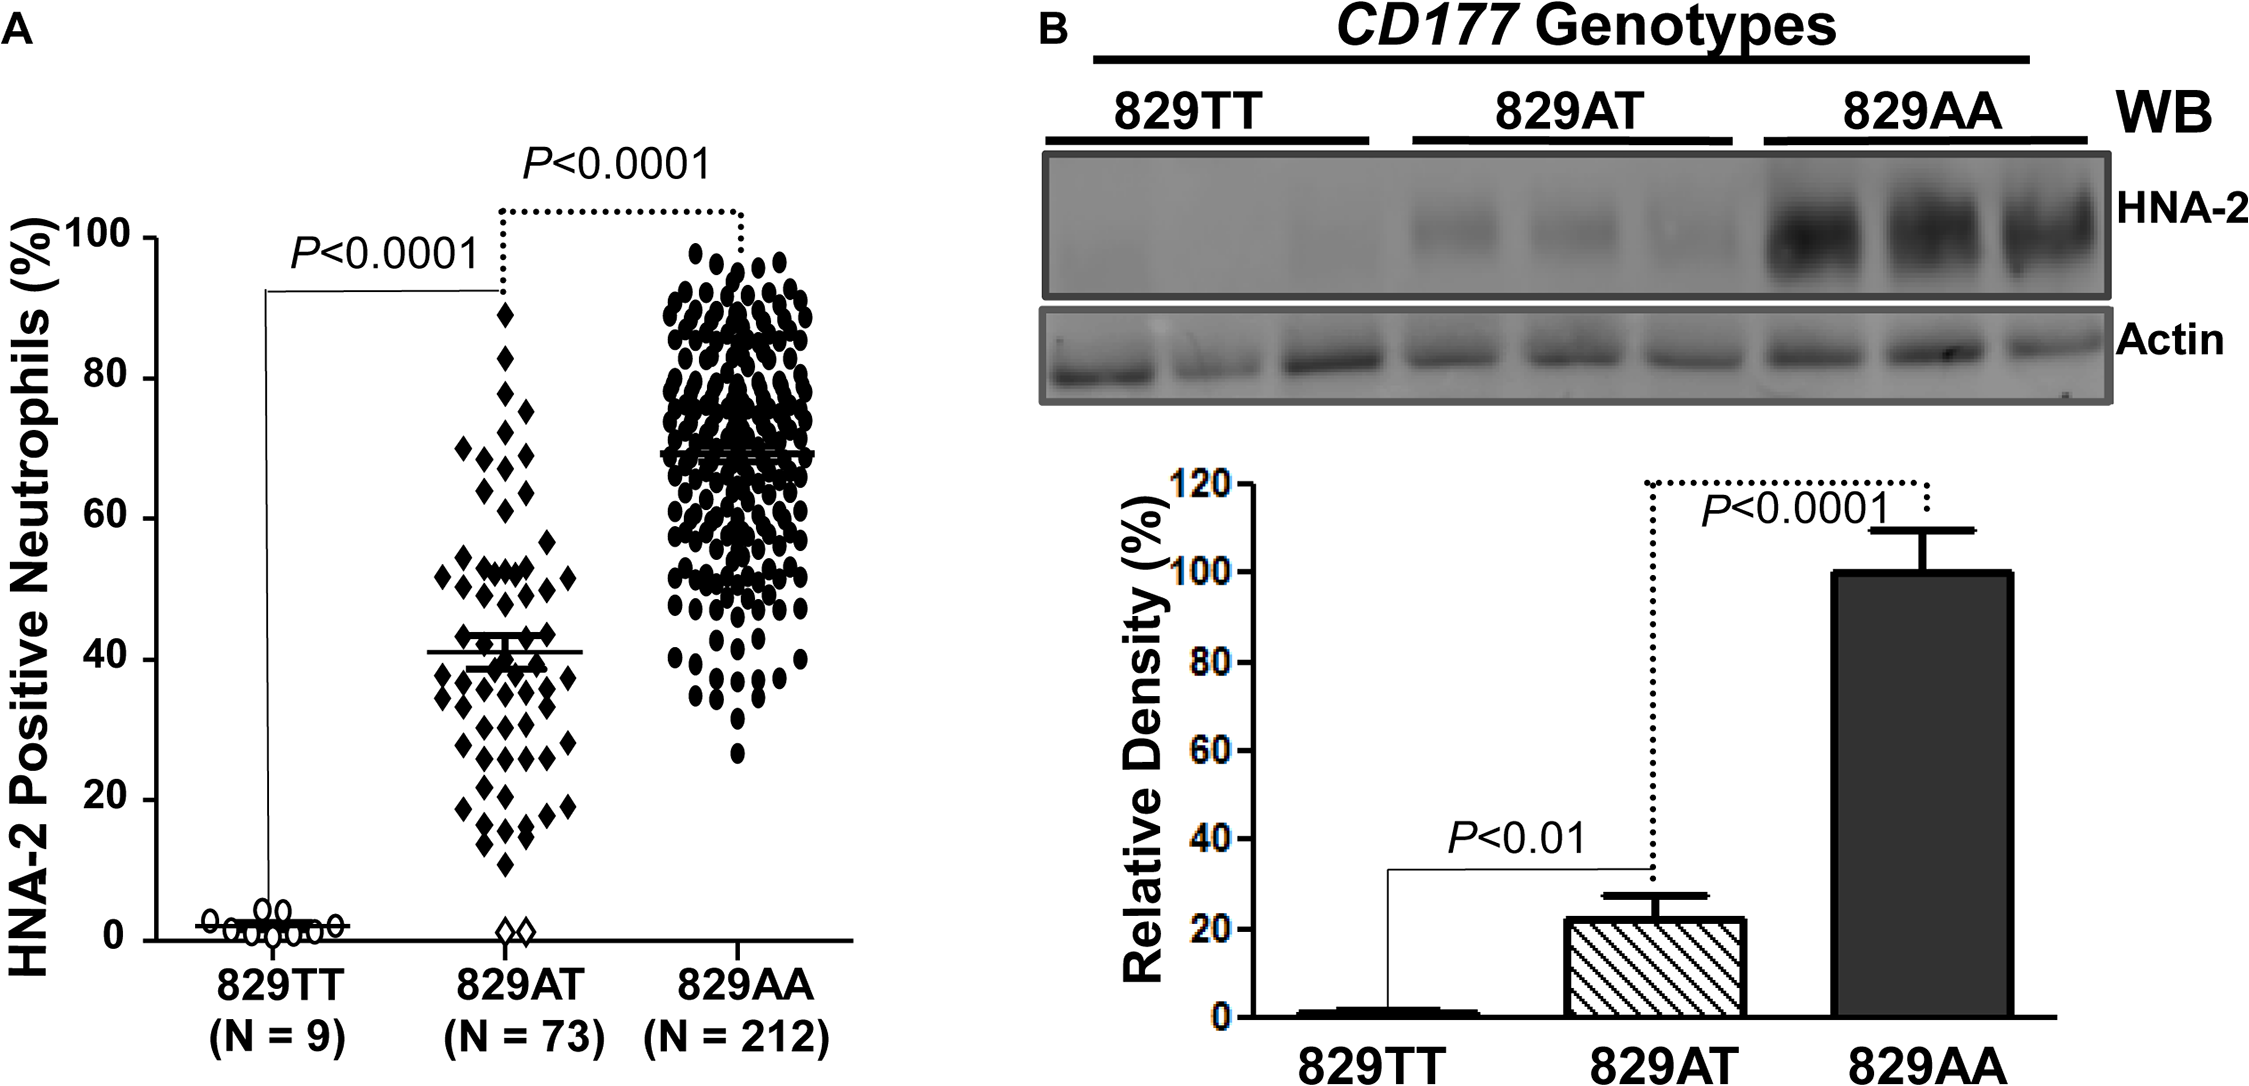 Association of <i>CD177</i> SNP 829A>T with HNA-2 expression.